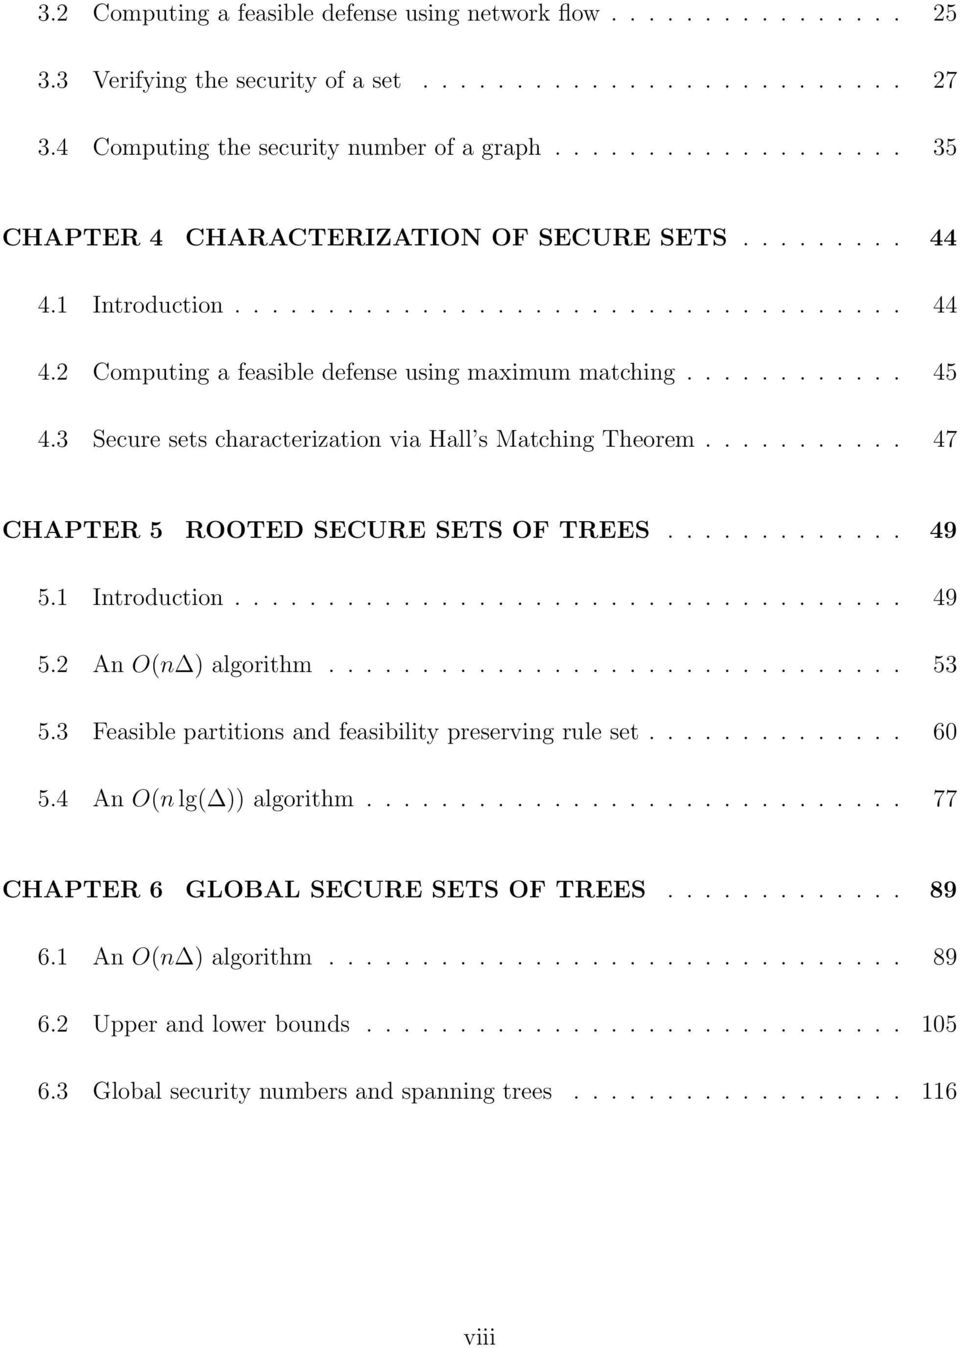 3 Secure sets characterization via Hall s Matching Theorem........... 47 CHAPTER 5 ROOTED SECURE SETS OF TREES............. 49 5.1 Introduction.................................... 49 5.2 An O(n ) algorithm.